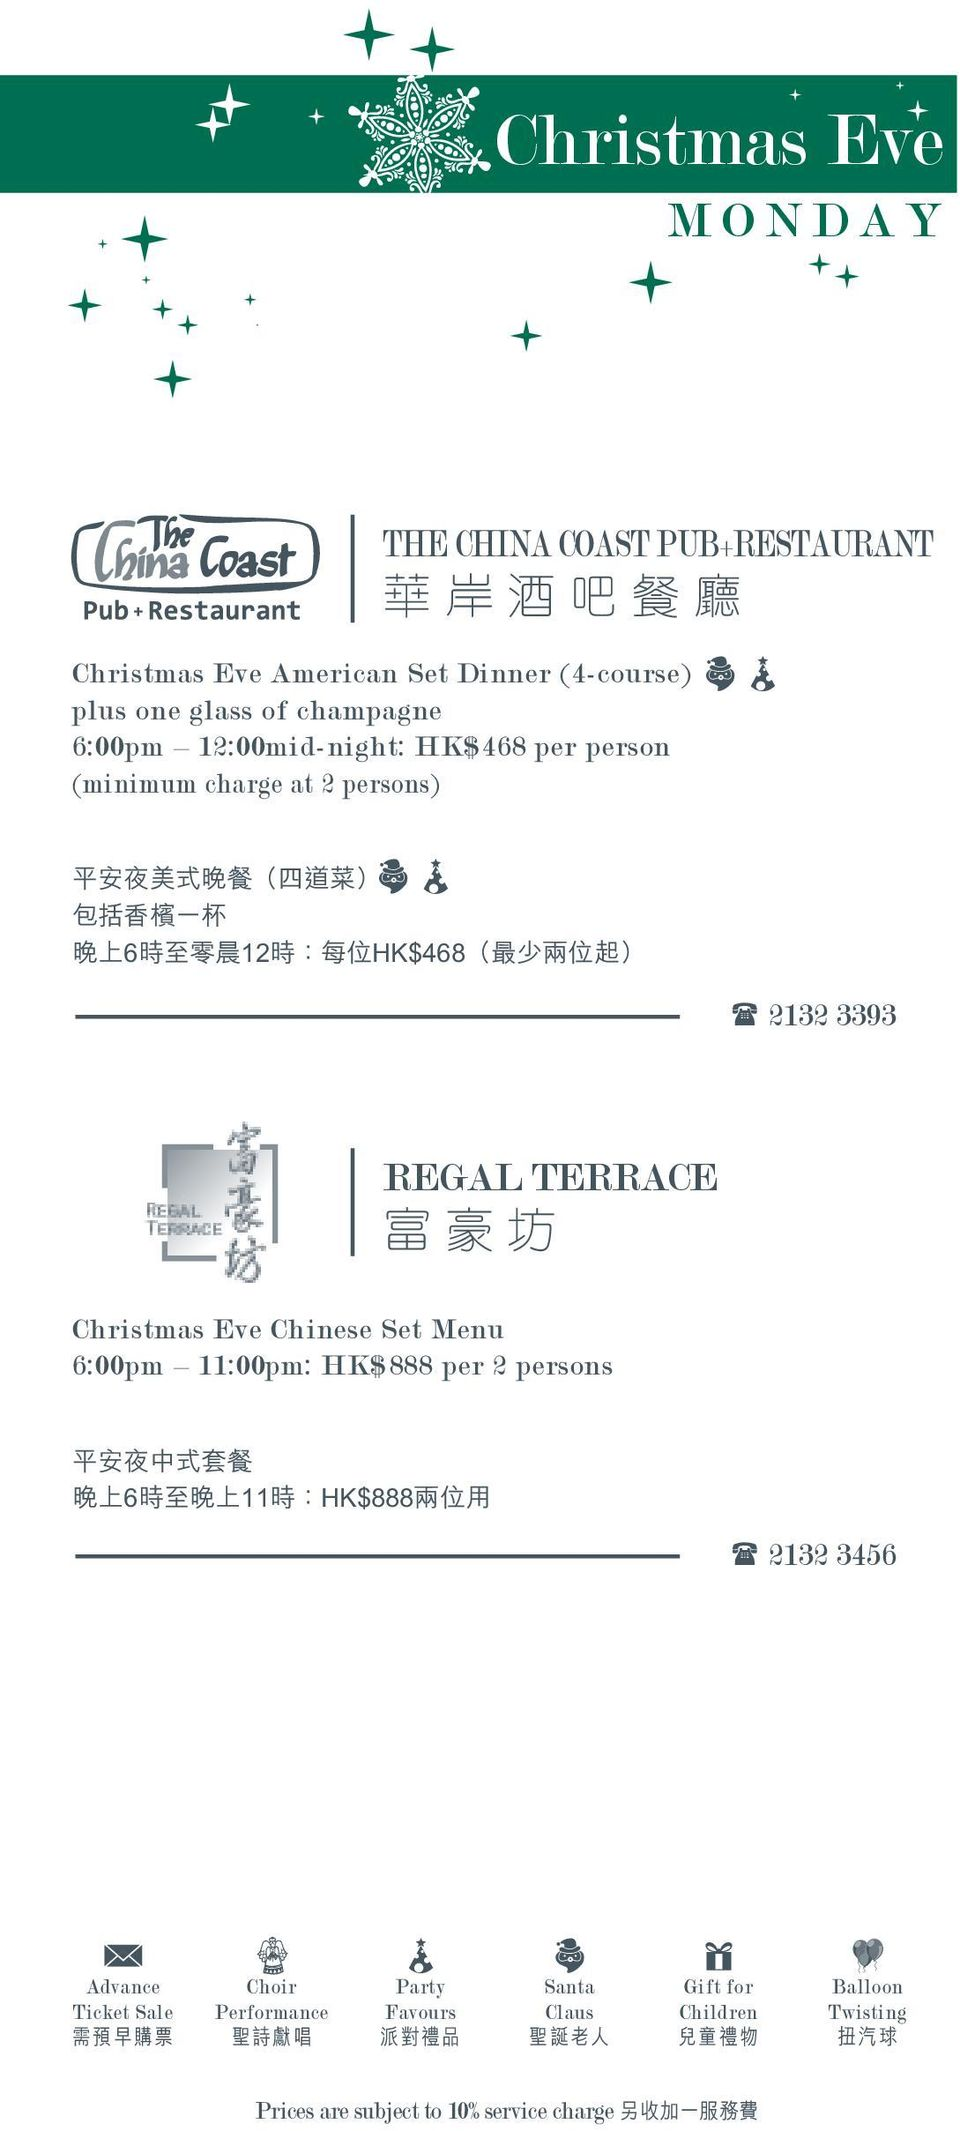 TERRACE Christmas Eve Chinese Set Menu 6:00pm 11:00pm: HK$888 per 2 persons ( 2132 3456 Advance Ticket Sale